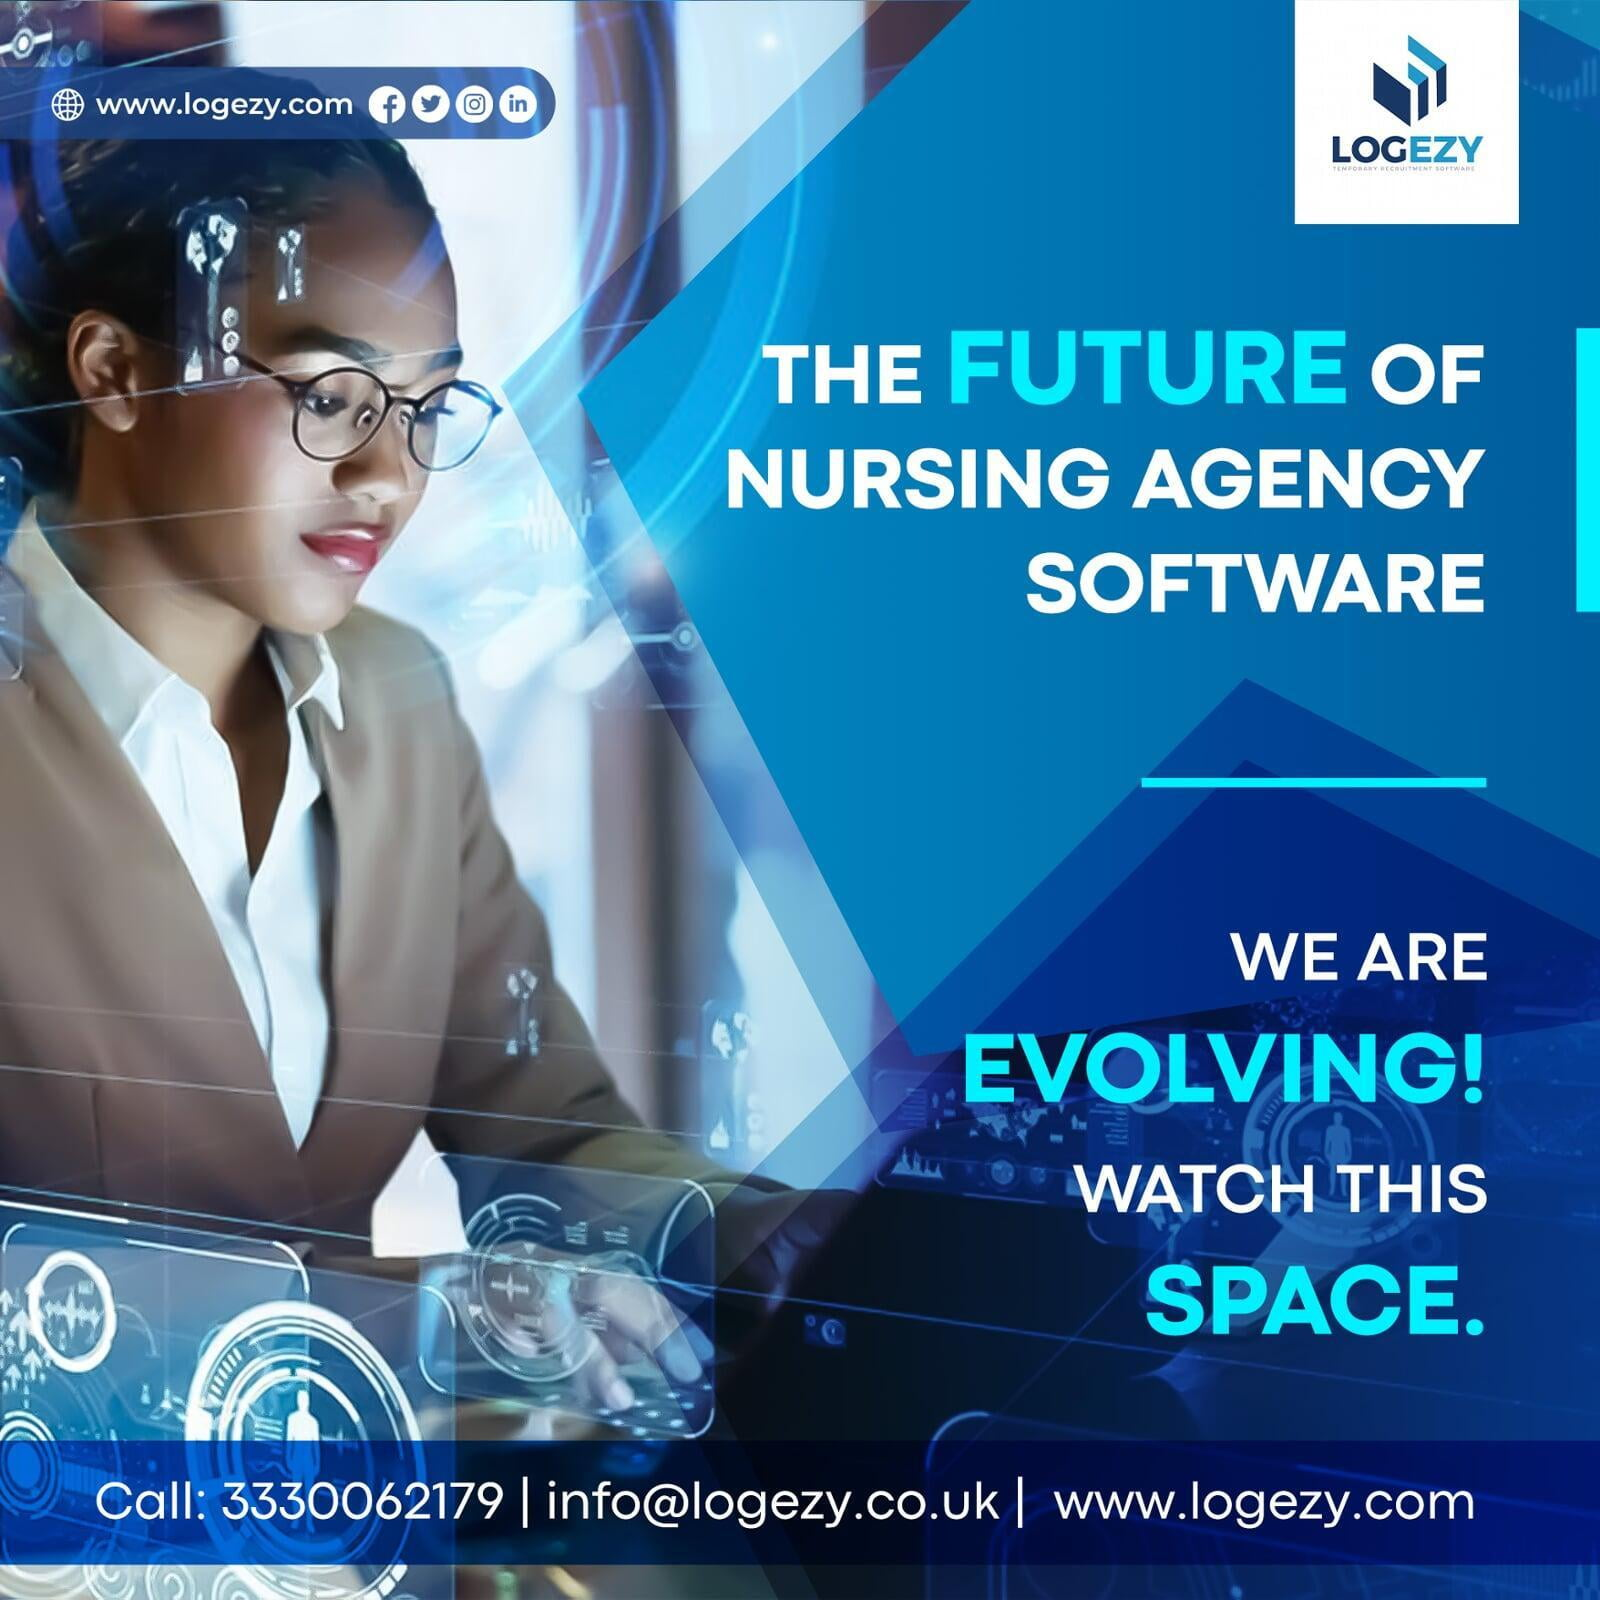 The Future Of Nursing Agency Software